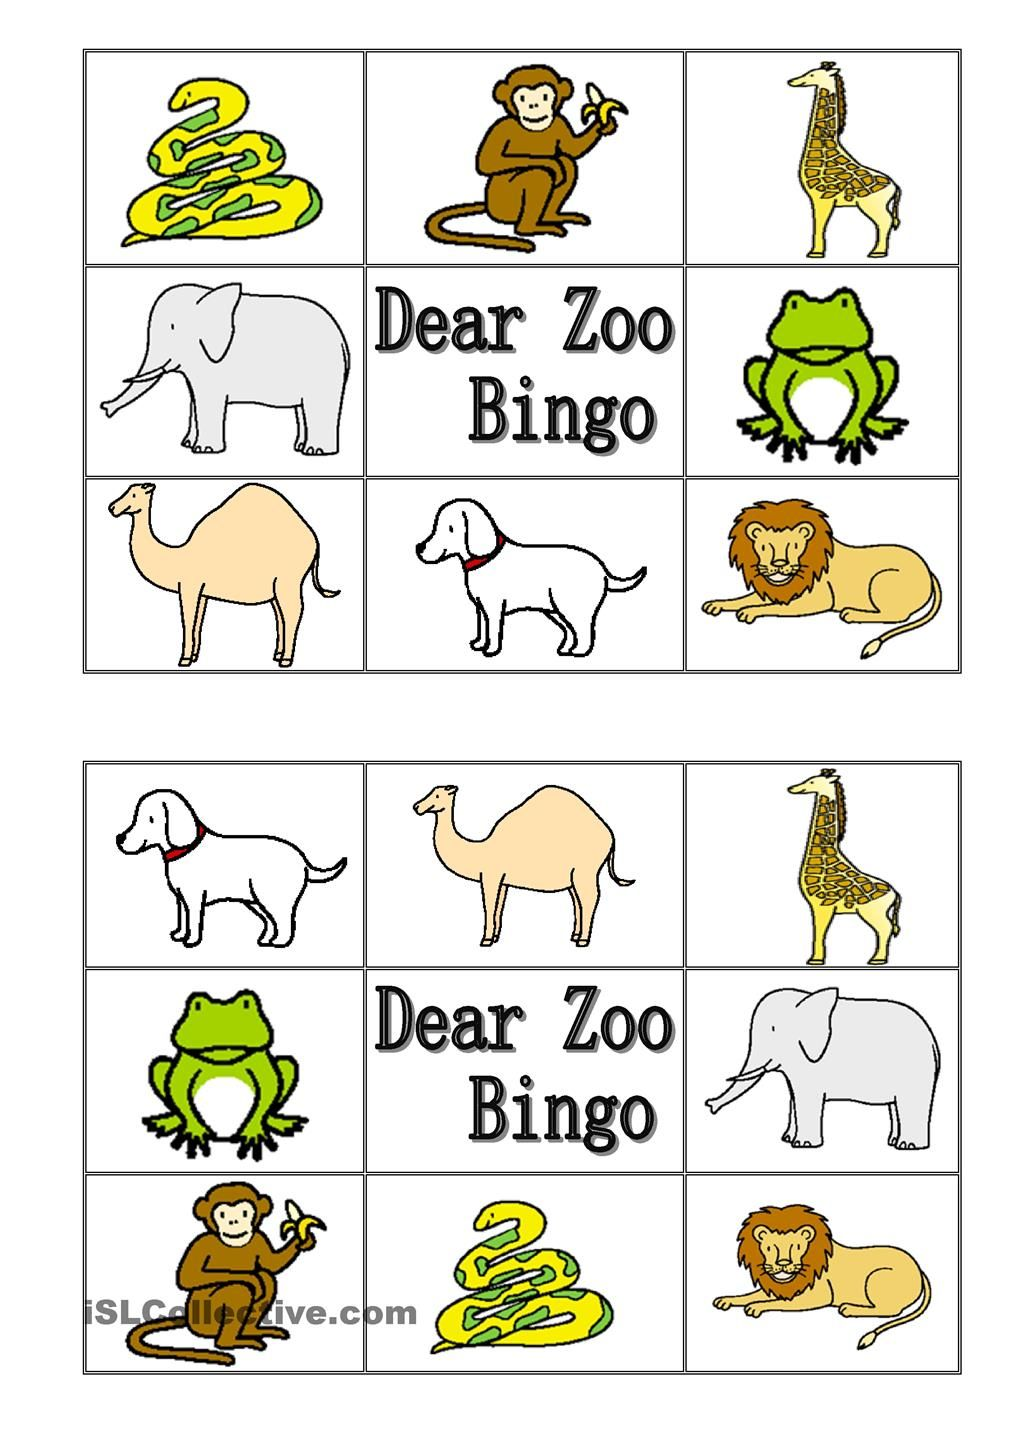 Dear Zoo Animal Bingo Dyr